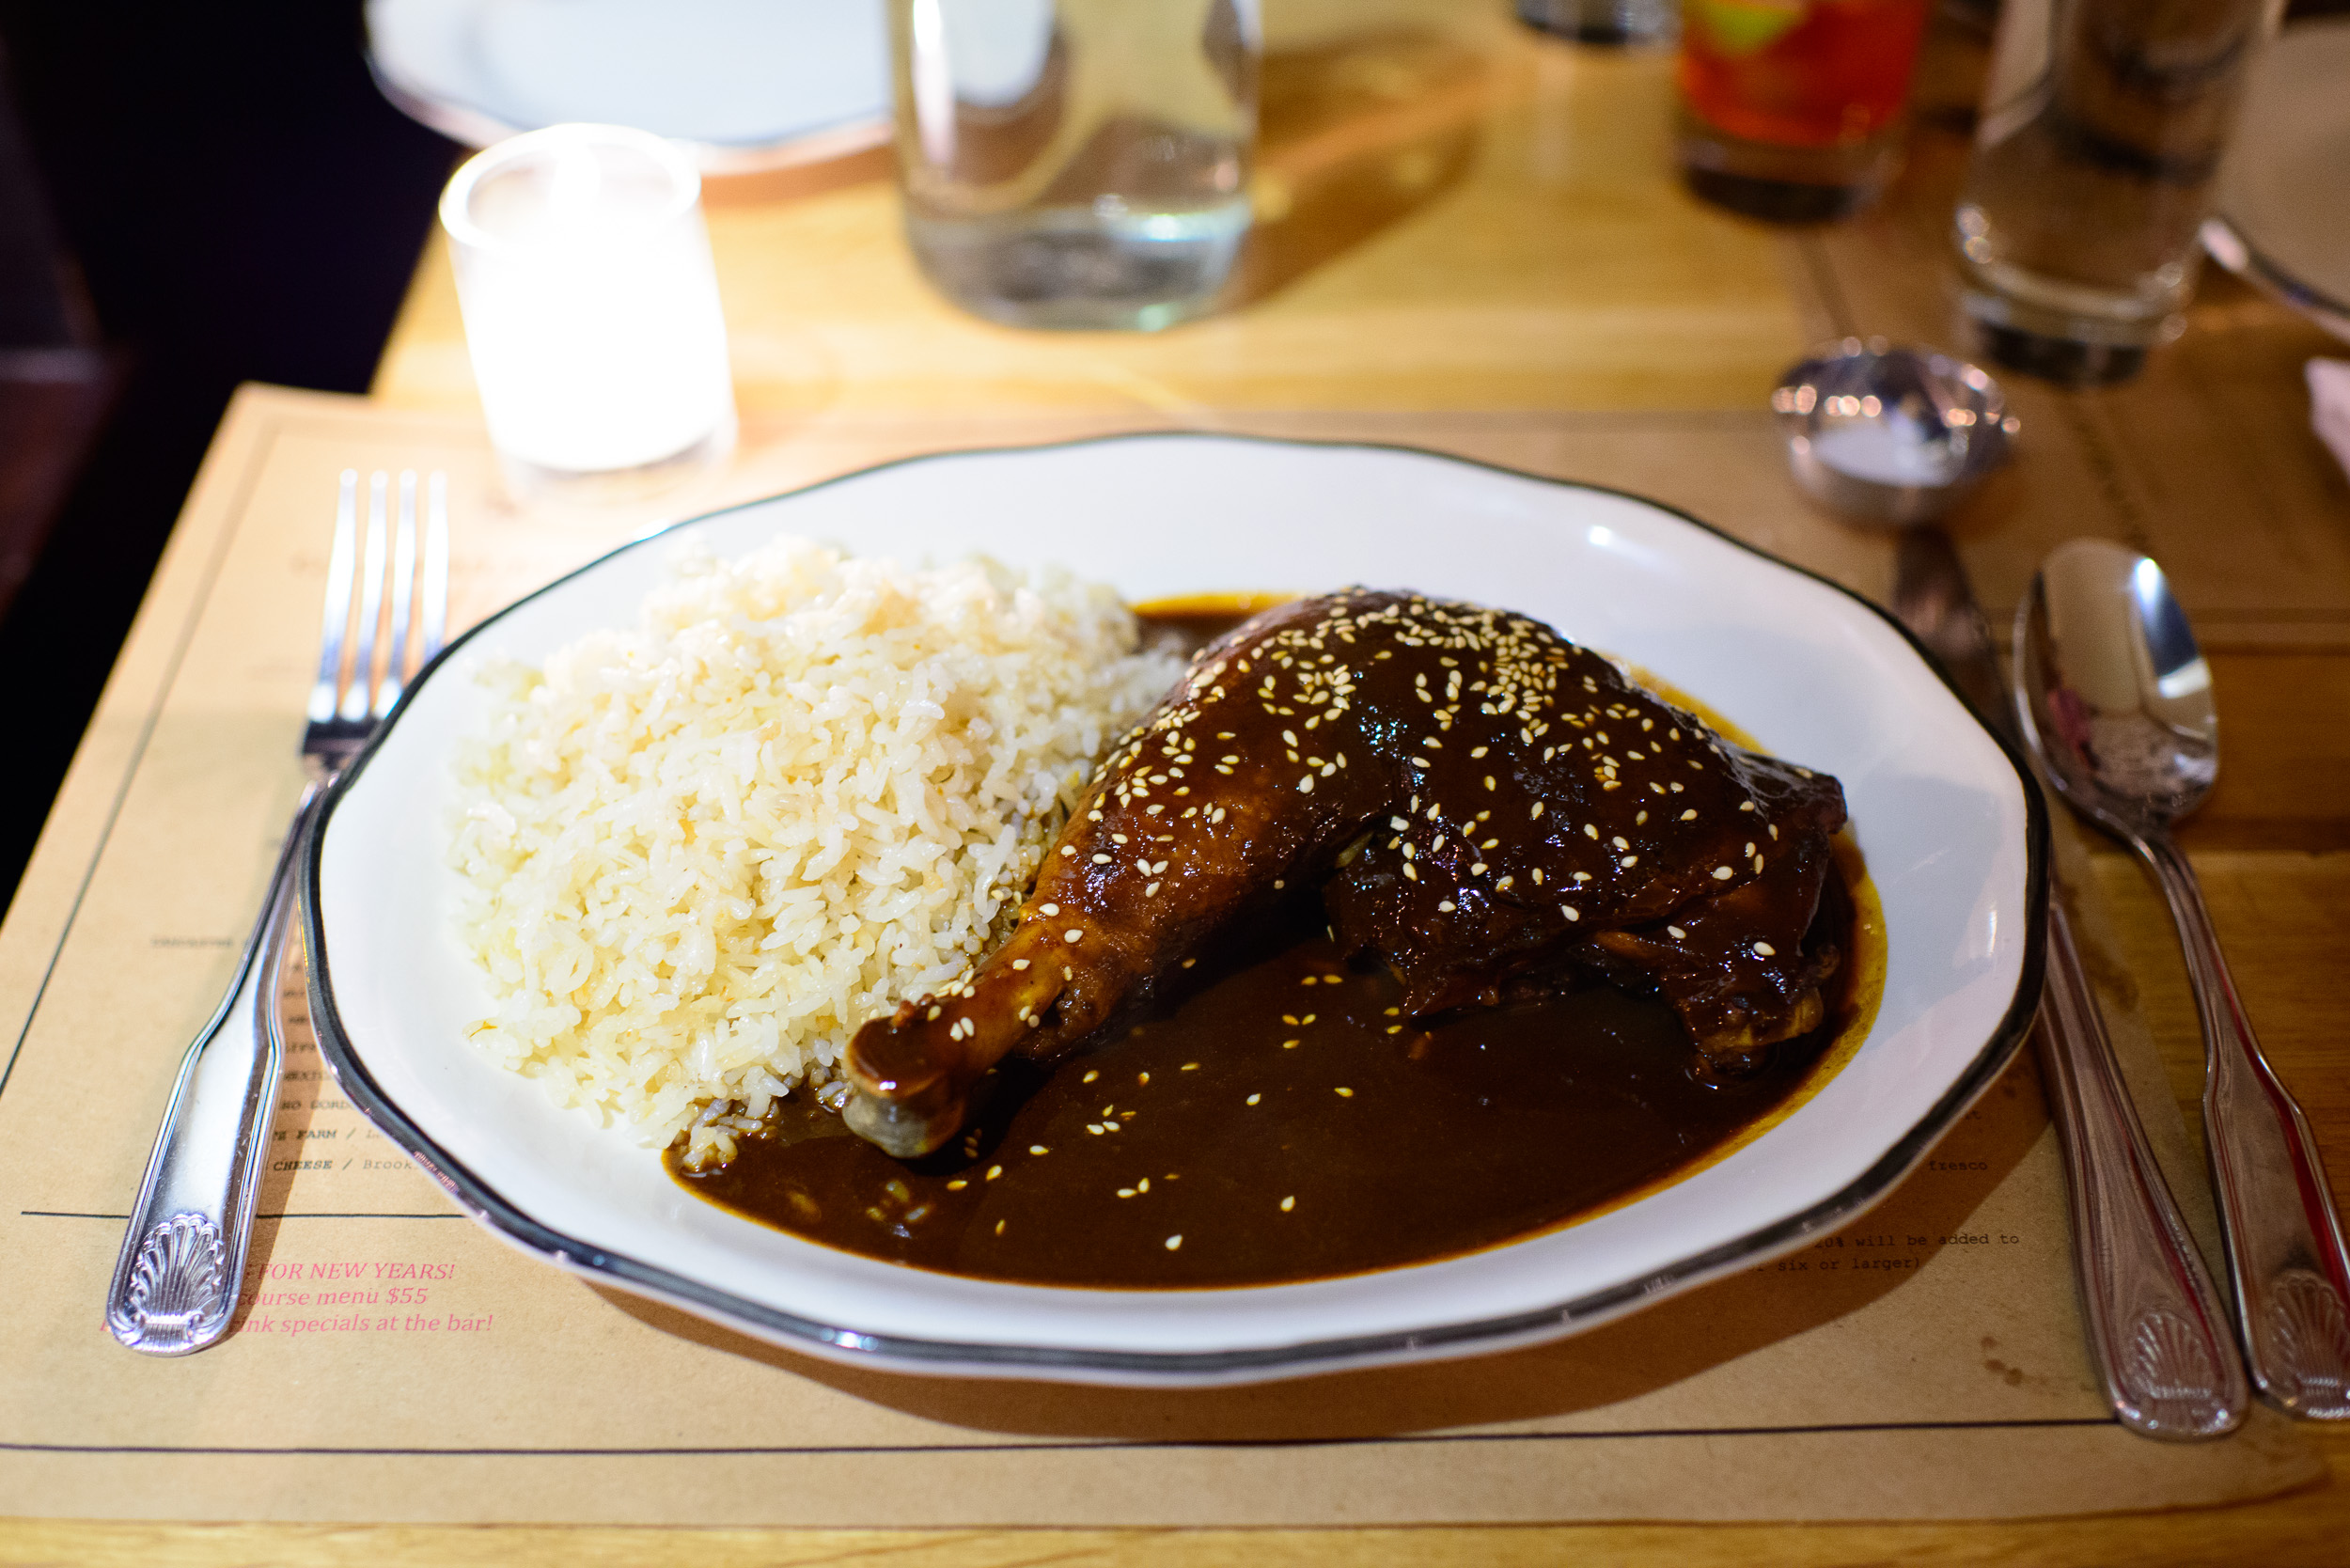 Mole poblano - braised and poached turkey, chipotle, ancho, mula